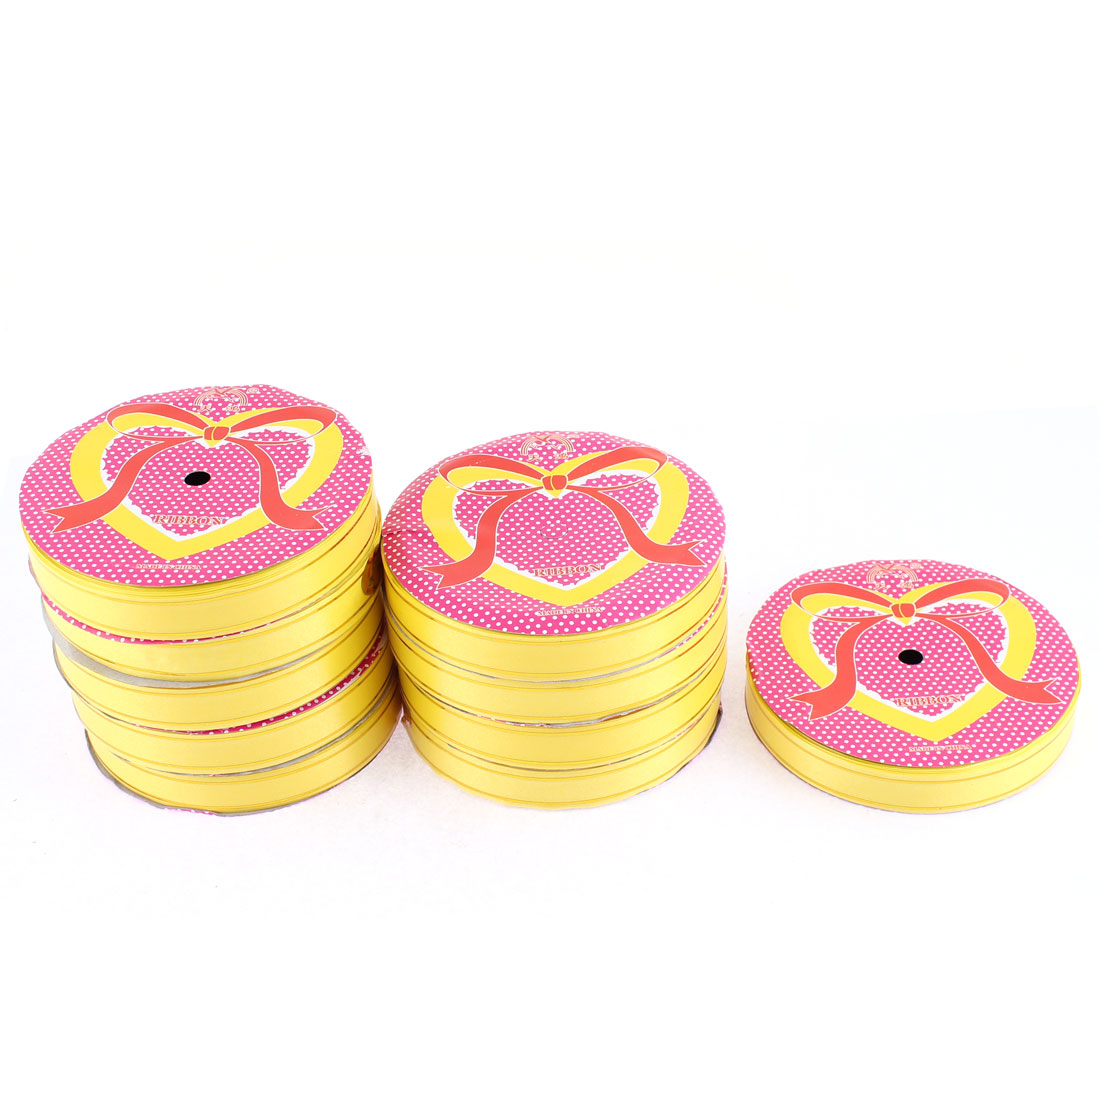 Wedding Festival Polyester Satin Ribbon Roll Tape Yellow 20m 22 Yards 10pcs